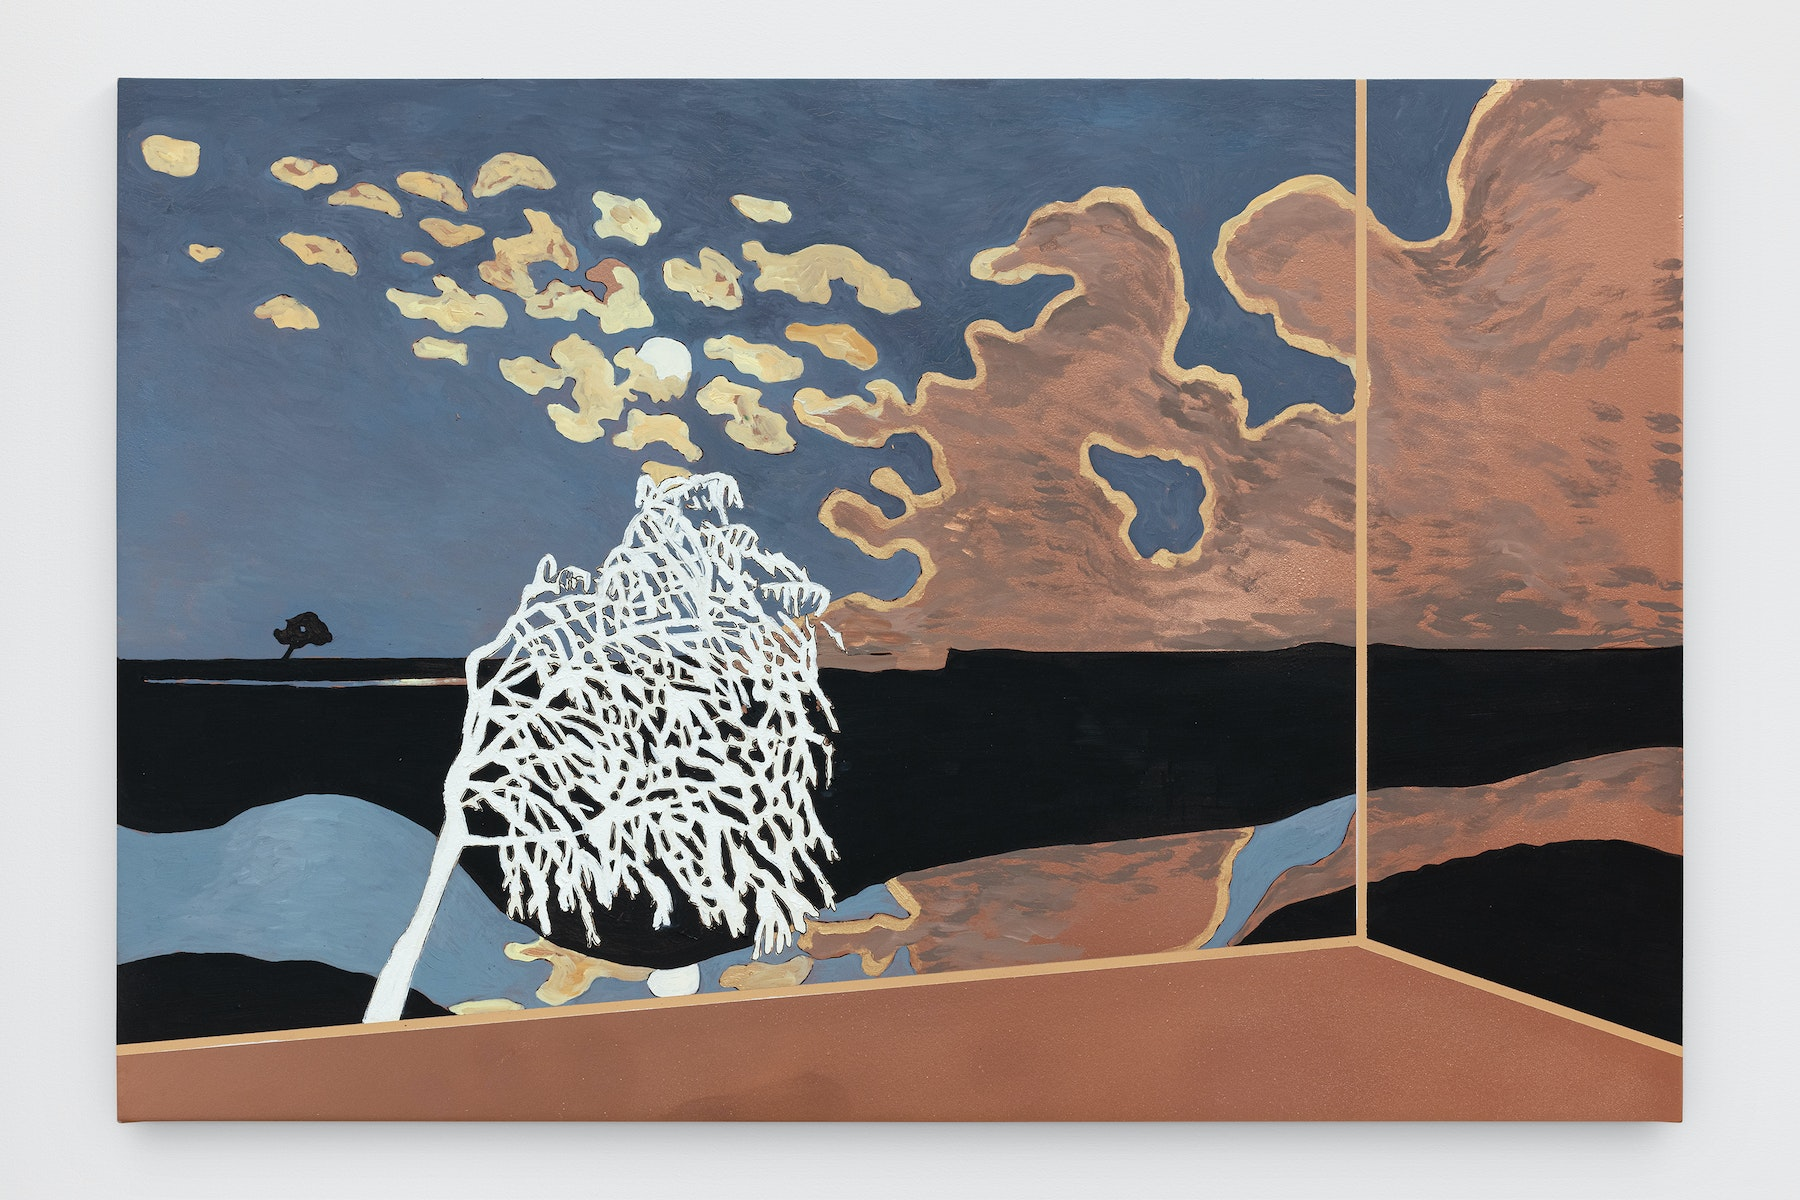 """Whitney Bedford """"Veduta (Vallotton Moonlight),"""" 2021 Ink and oil on linen on hybrid panel 24"""" x 36"""" x 2"""" [HxWxD] (60.96 x 91.44 x 5.08 cm) Inventory #BED415 Courtesy of the artist and Vielmetter Los Angeles Photo credit: Evan Bedford"""